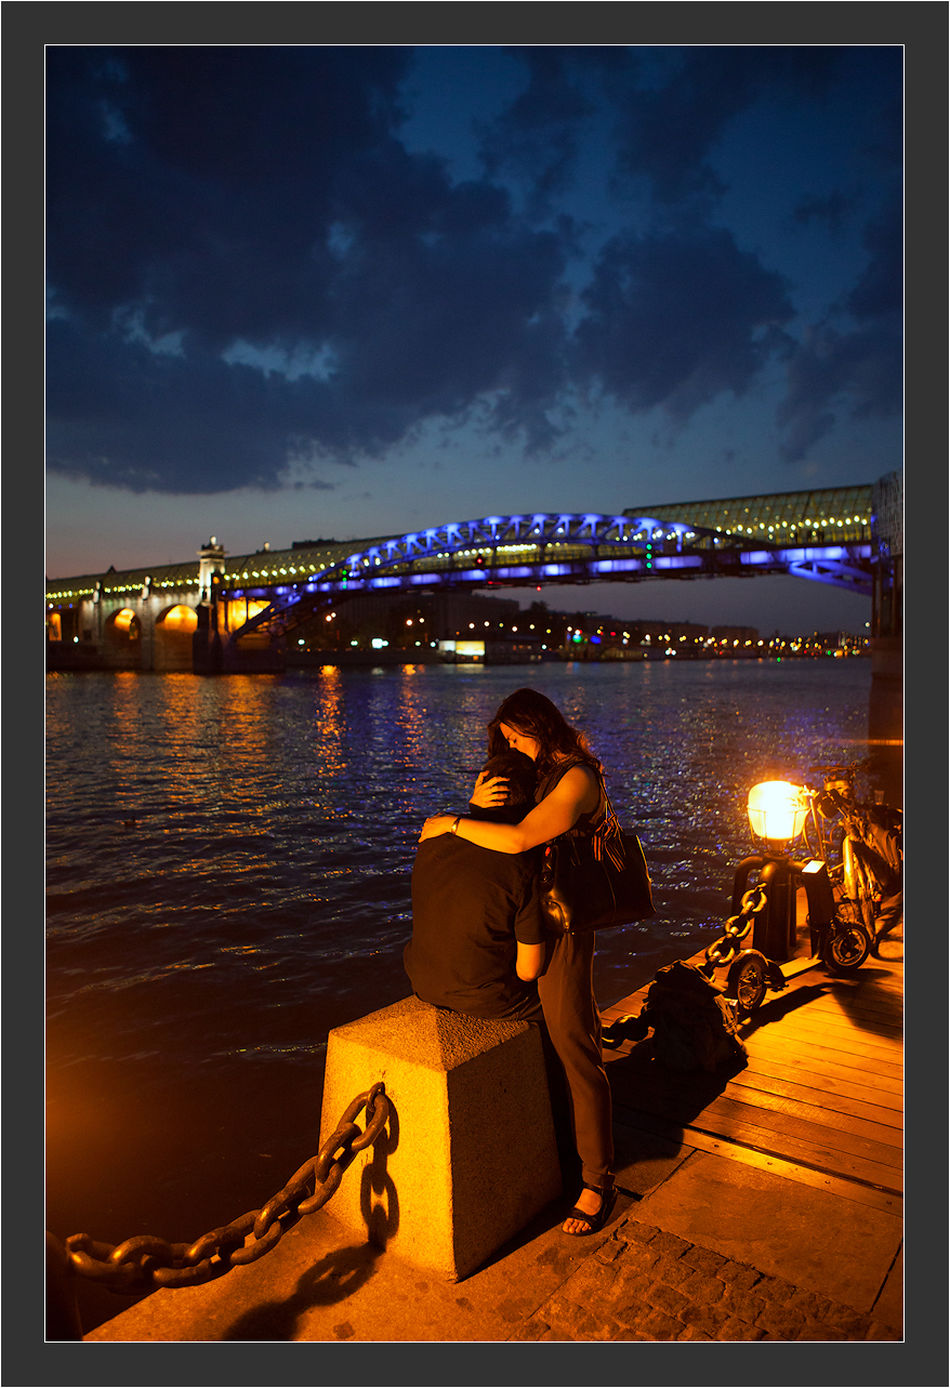 Street Photography Streetphoto Streetphotography Night Illuminated Sky Cloud Riverbank Outdoors Person Togetherness Water Love Love ♥ Bridge Moscow Moscow, Москва Moscow City City Life City StillLifePhotography Still Life Canon 5d Mark ıı Canon EF 100-400 L IS USM